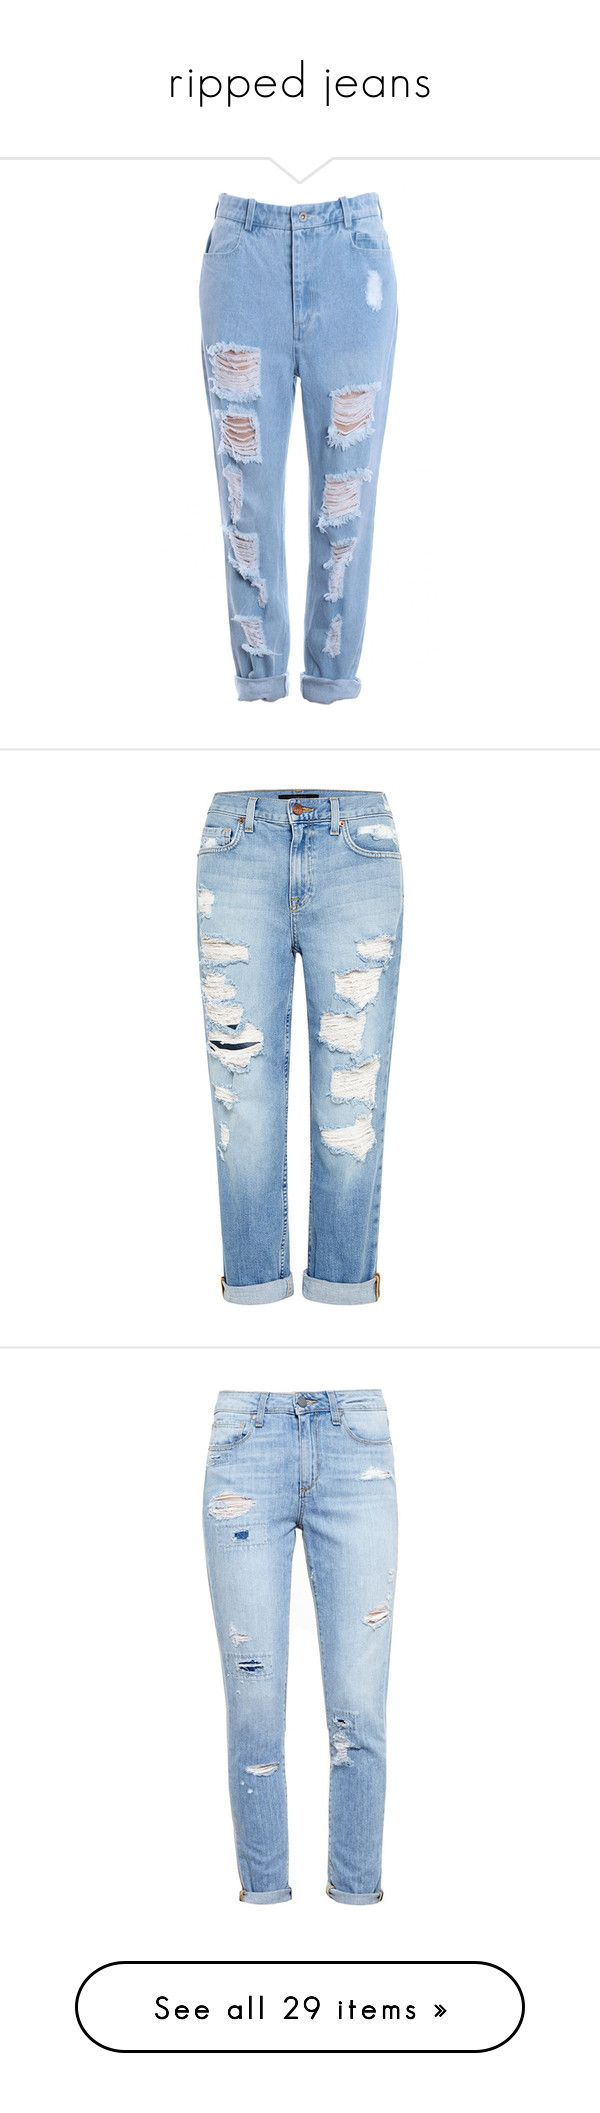 """""""ripped jeans"""" by amy-lopezx ❤ liked on Polyvore featuring jeans, pants, bottoms, romwe, destroyed jeans, blue jeans, light blue jeans, ripped blue jeans, destructed jeans and pantalones"""